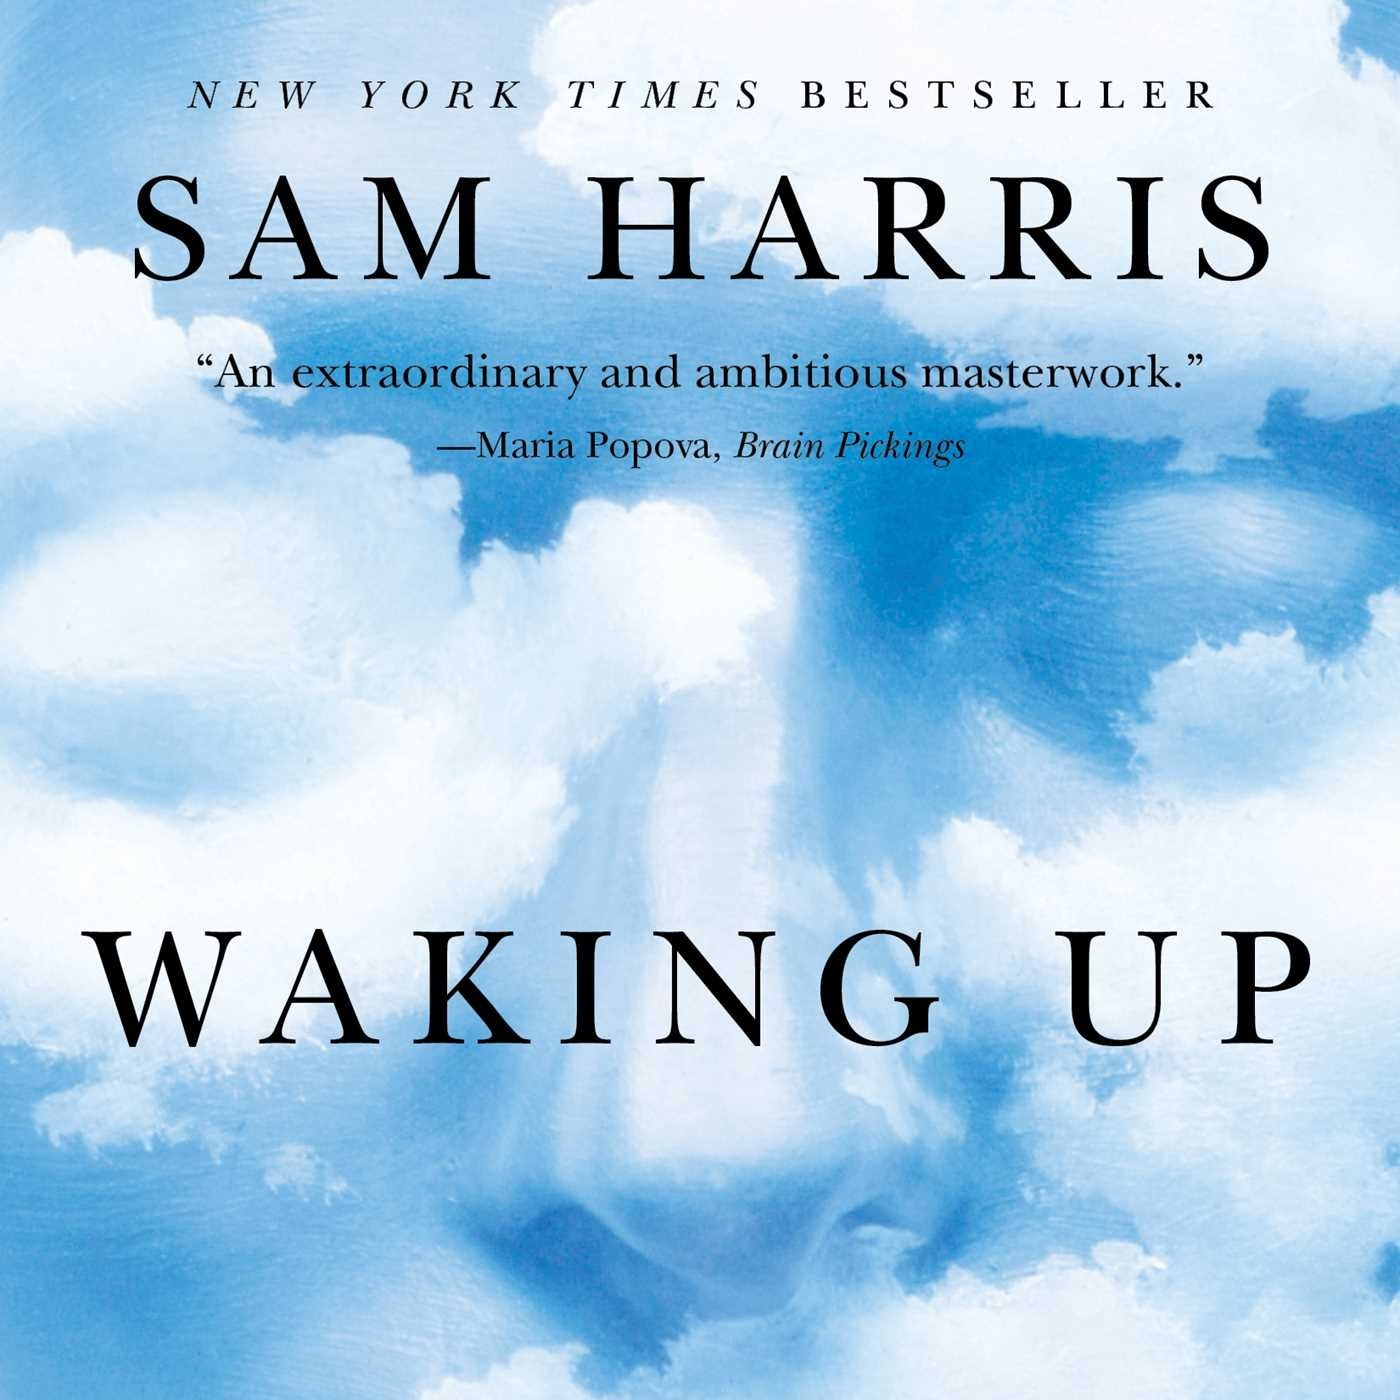 """Waking Up"" Review: Gaze Into the Abyss - Lifehacking Spirituality without Superstition"